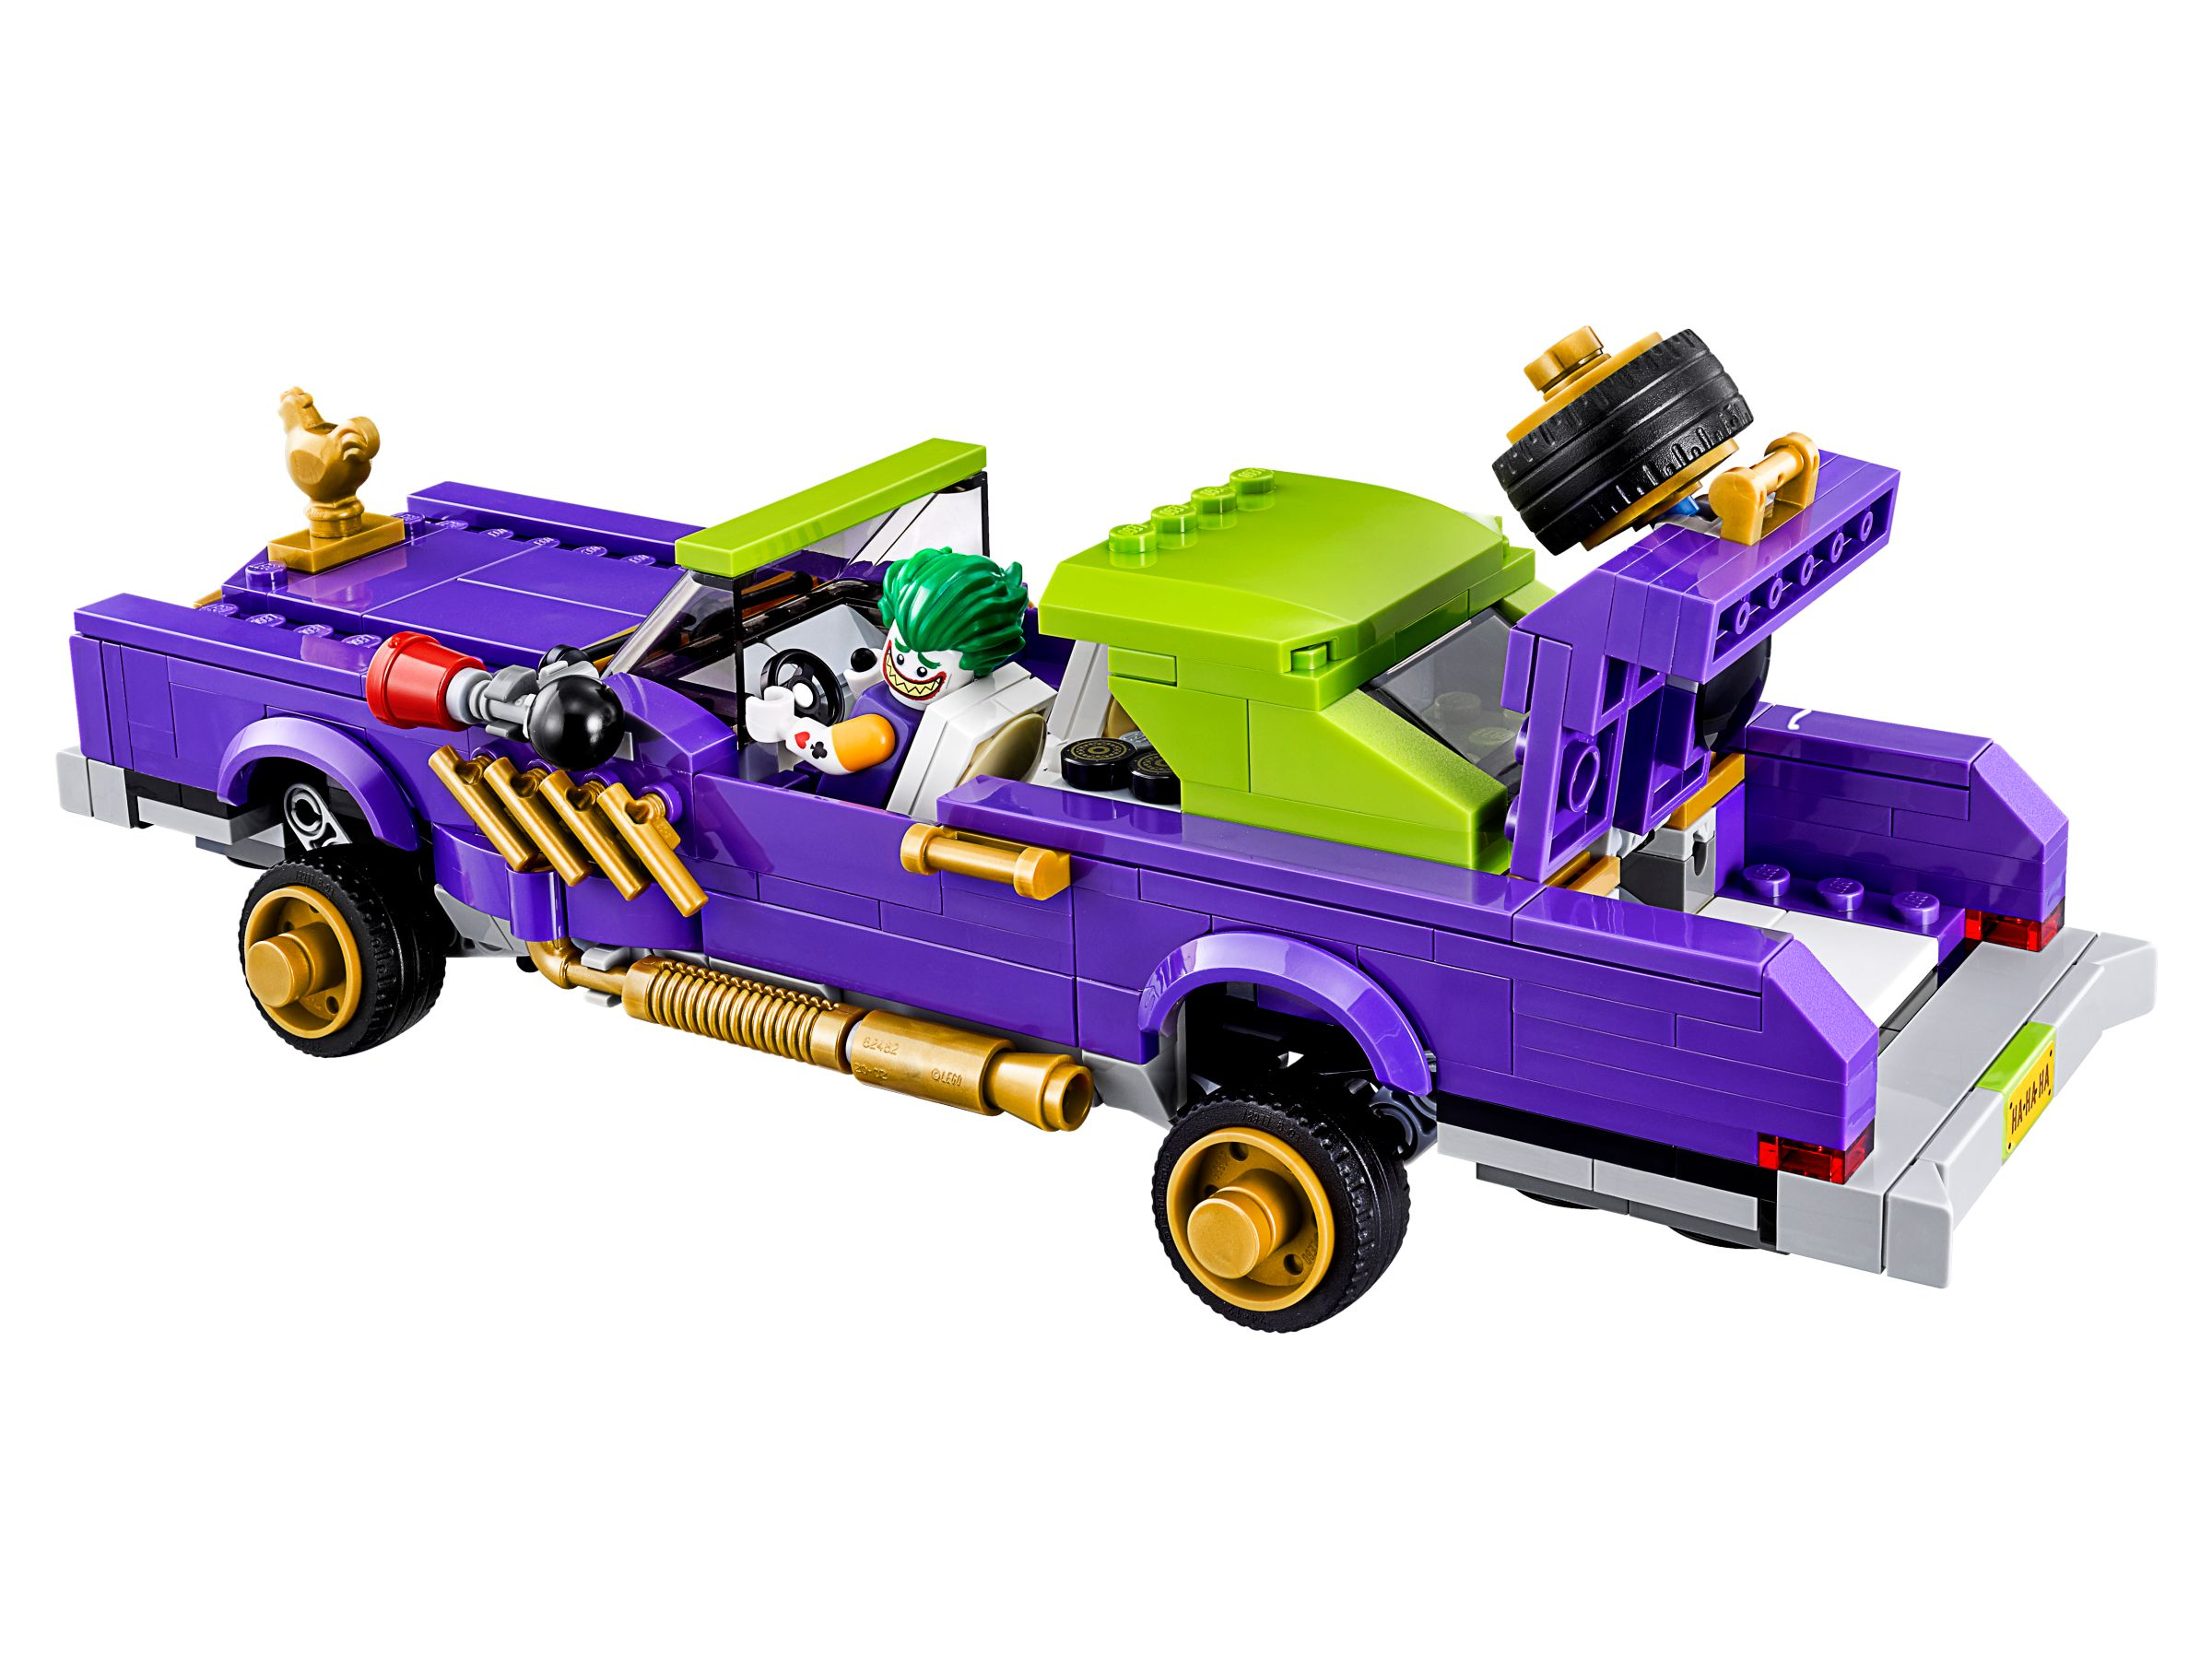 LEGO The LEGO Batman Movie 70906 Jokers berüchtigter Lowrider LEGO_70906_alt4.jpg